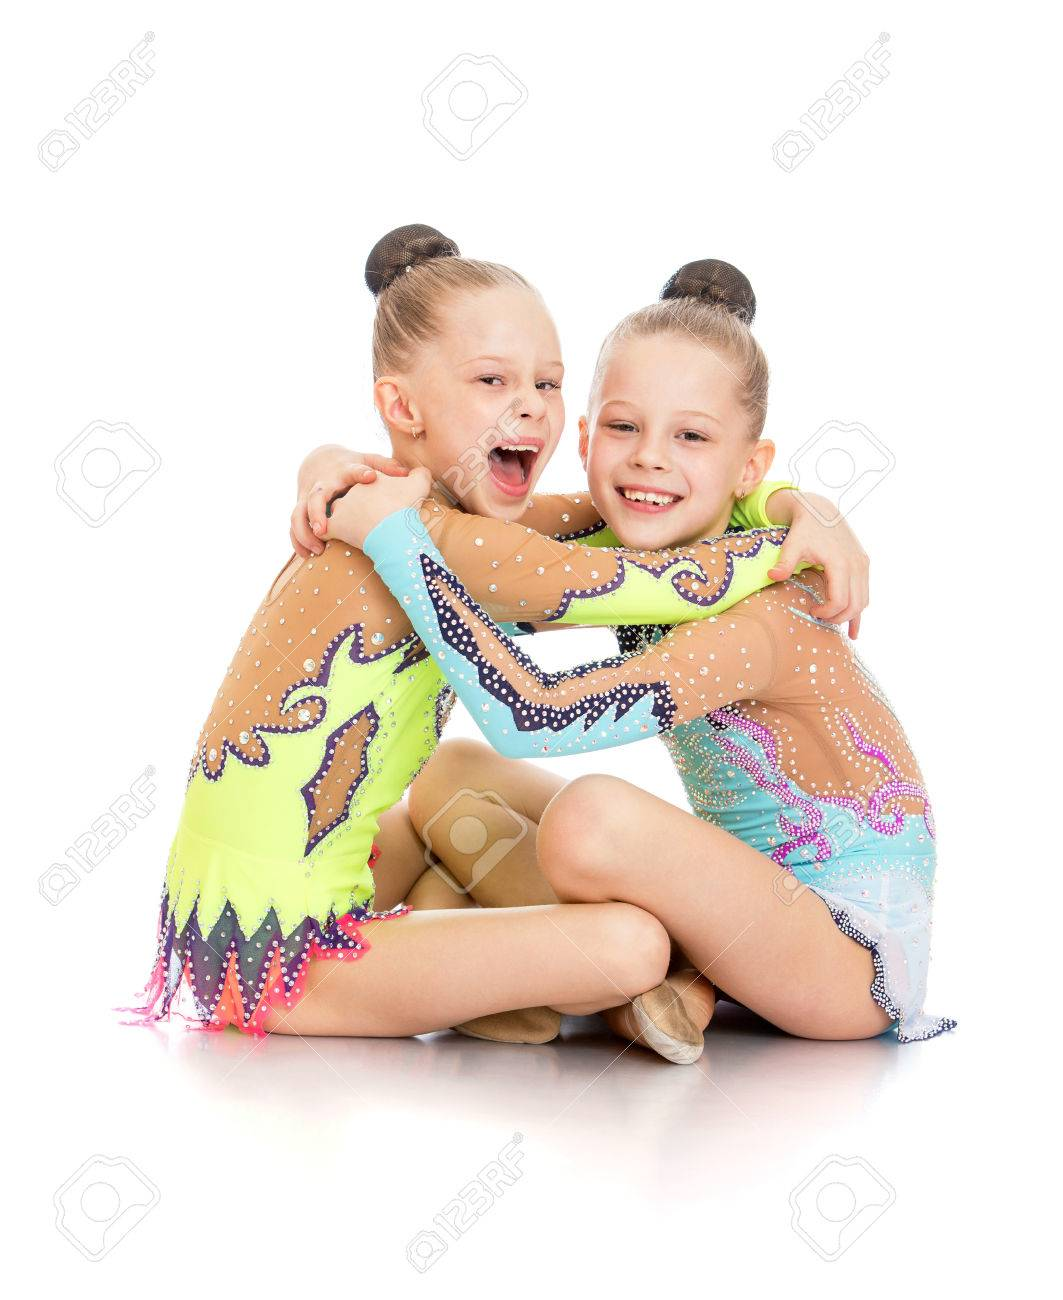 Laughing girls gymnasts sitting on the floor cuddling and fun-Isolated on white background - 43428889